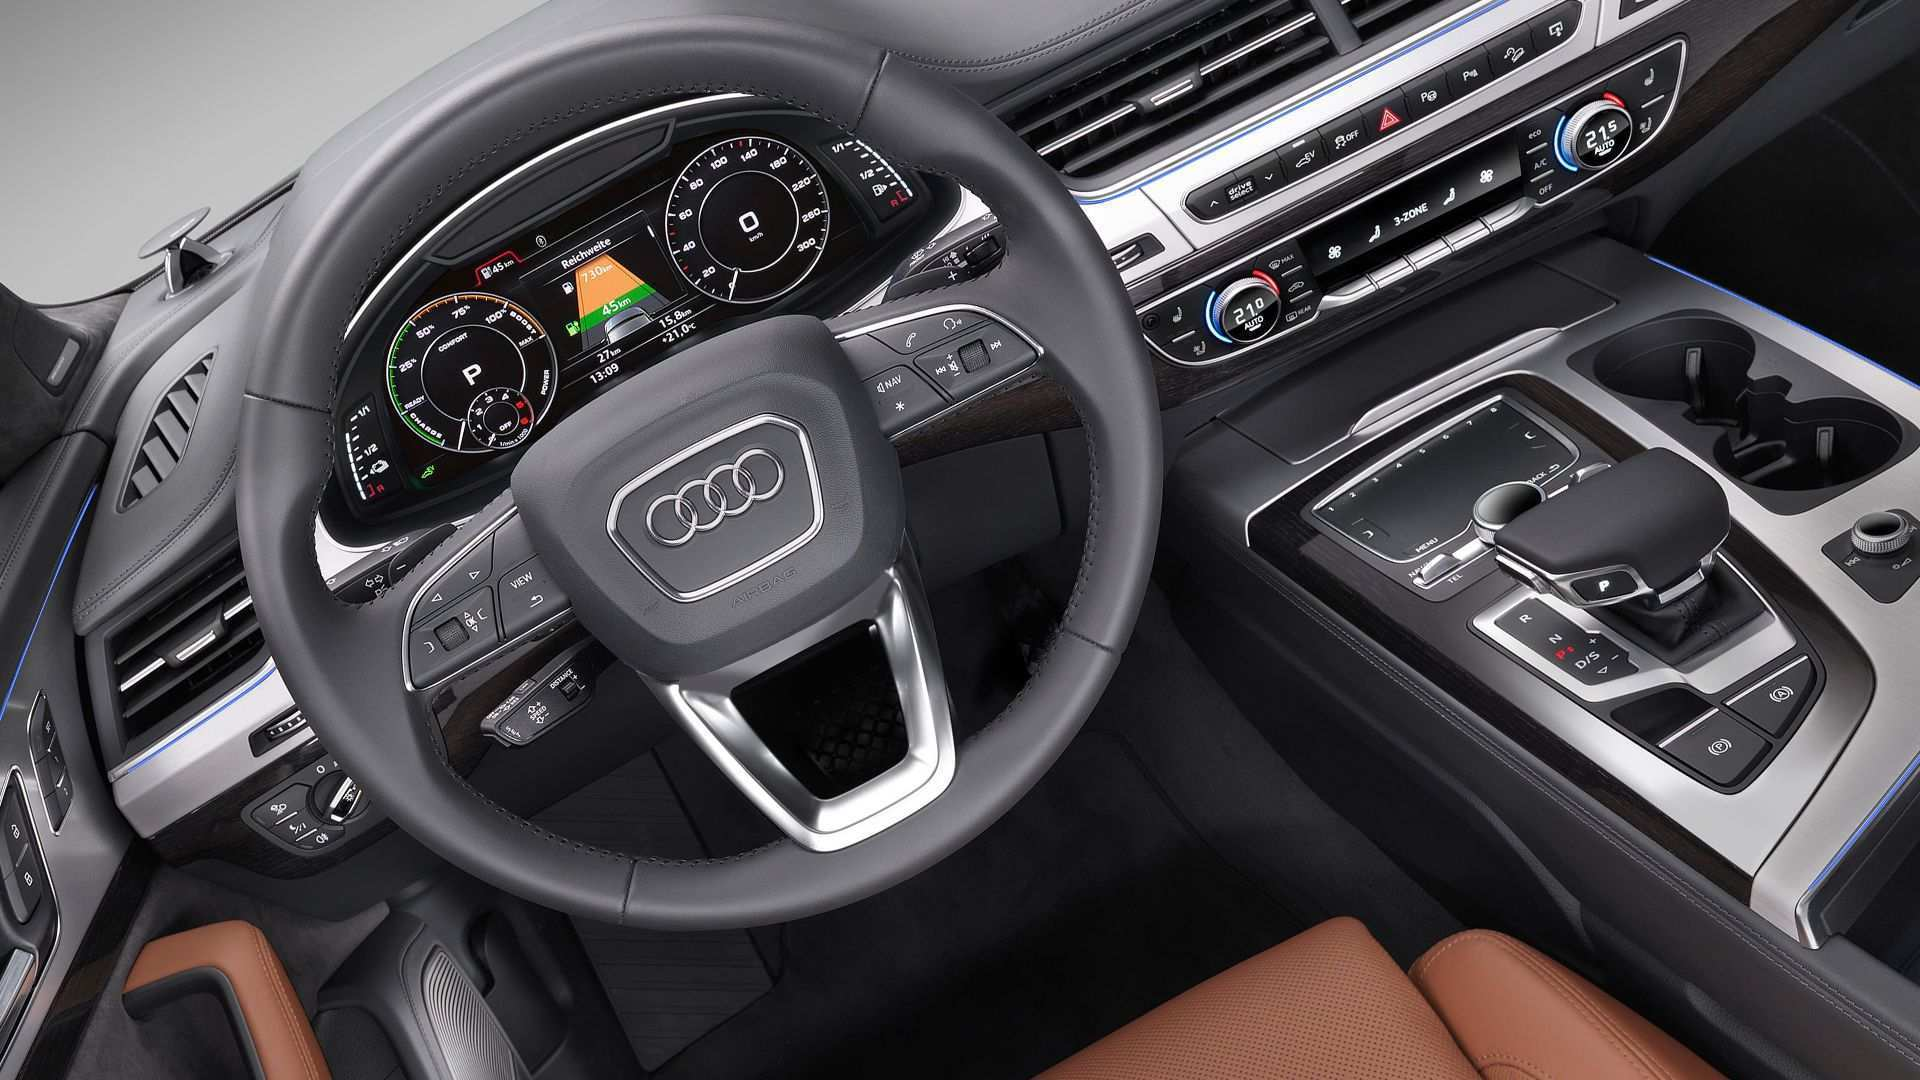 16 Concept of Best Audi 2019 Models Q5 Picture Release Date And Review Redesign and Concept with Best Audi 2019 Models Q5 Picture Release Date And Review